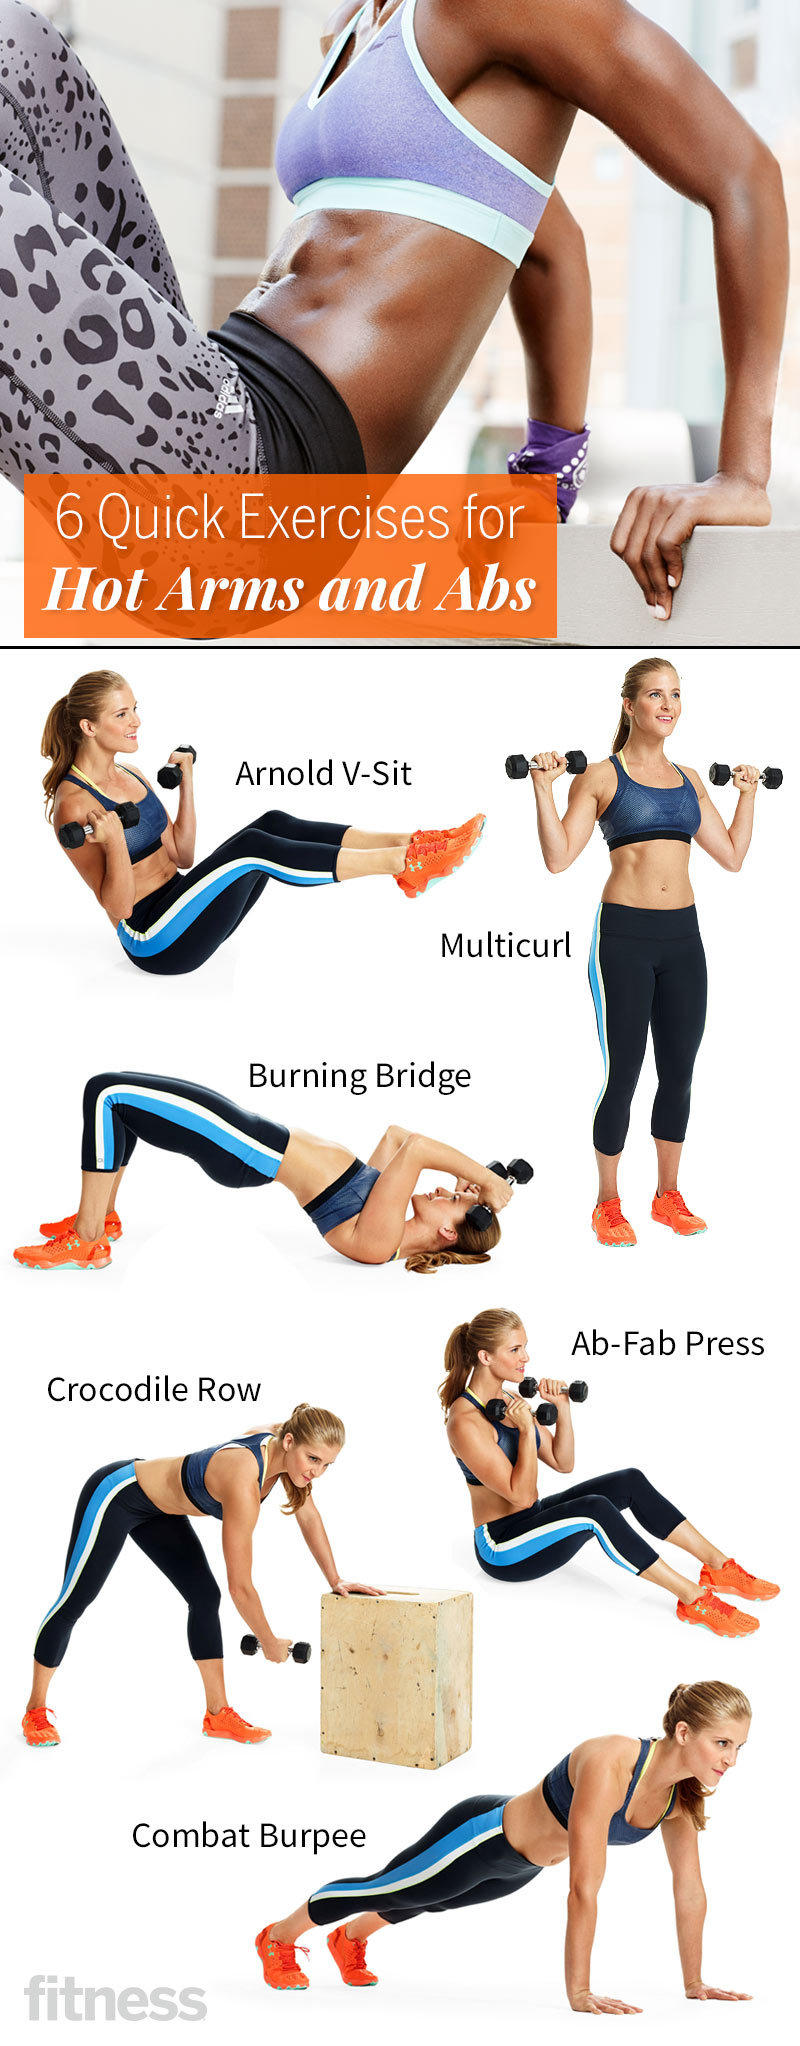 6 Quick Exercises For Hot Arms And Abs Fitness Magazine